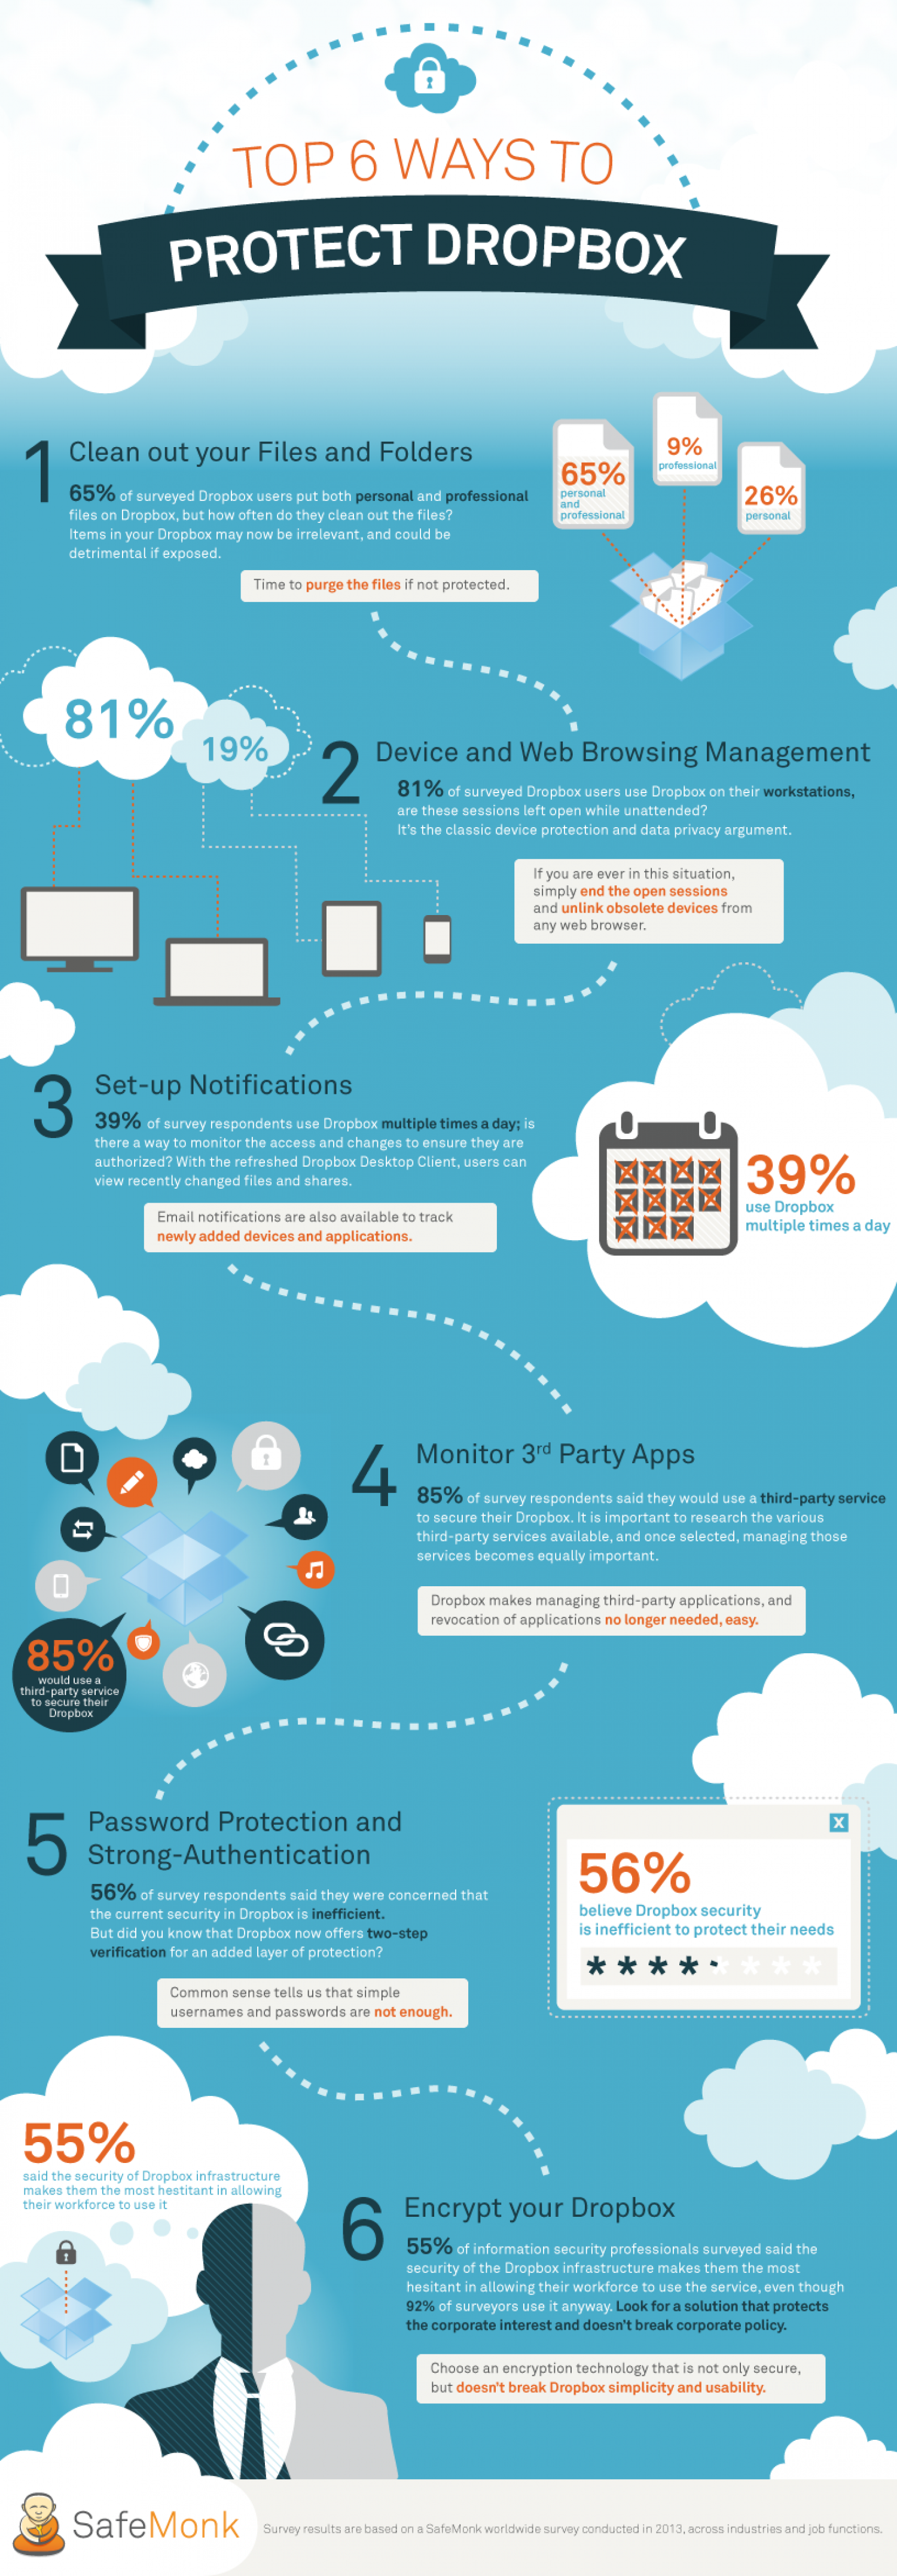 Top 6 Ways to Protect Dropbox Infographic